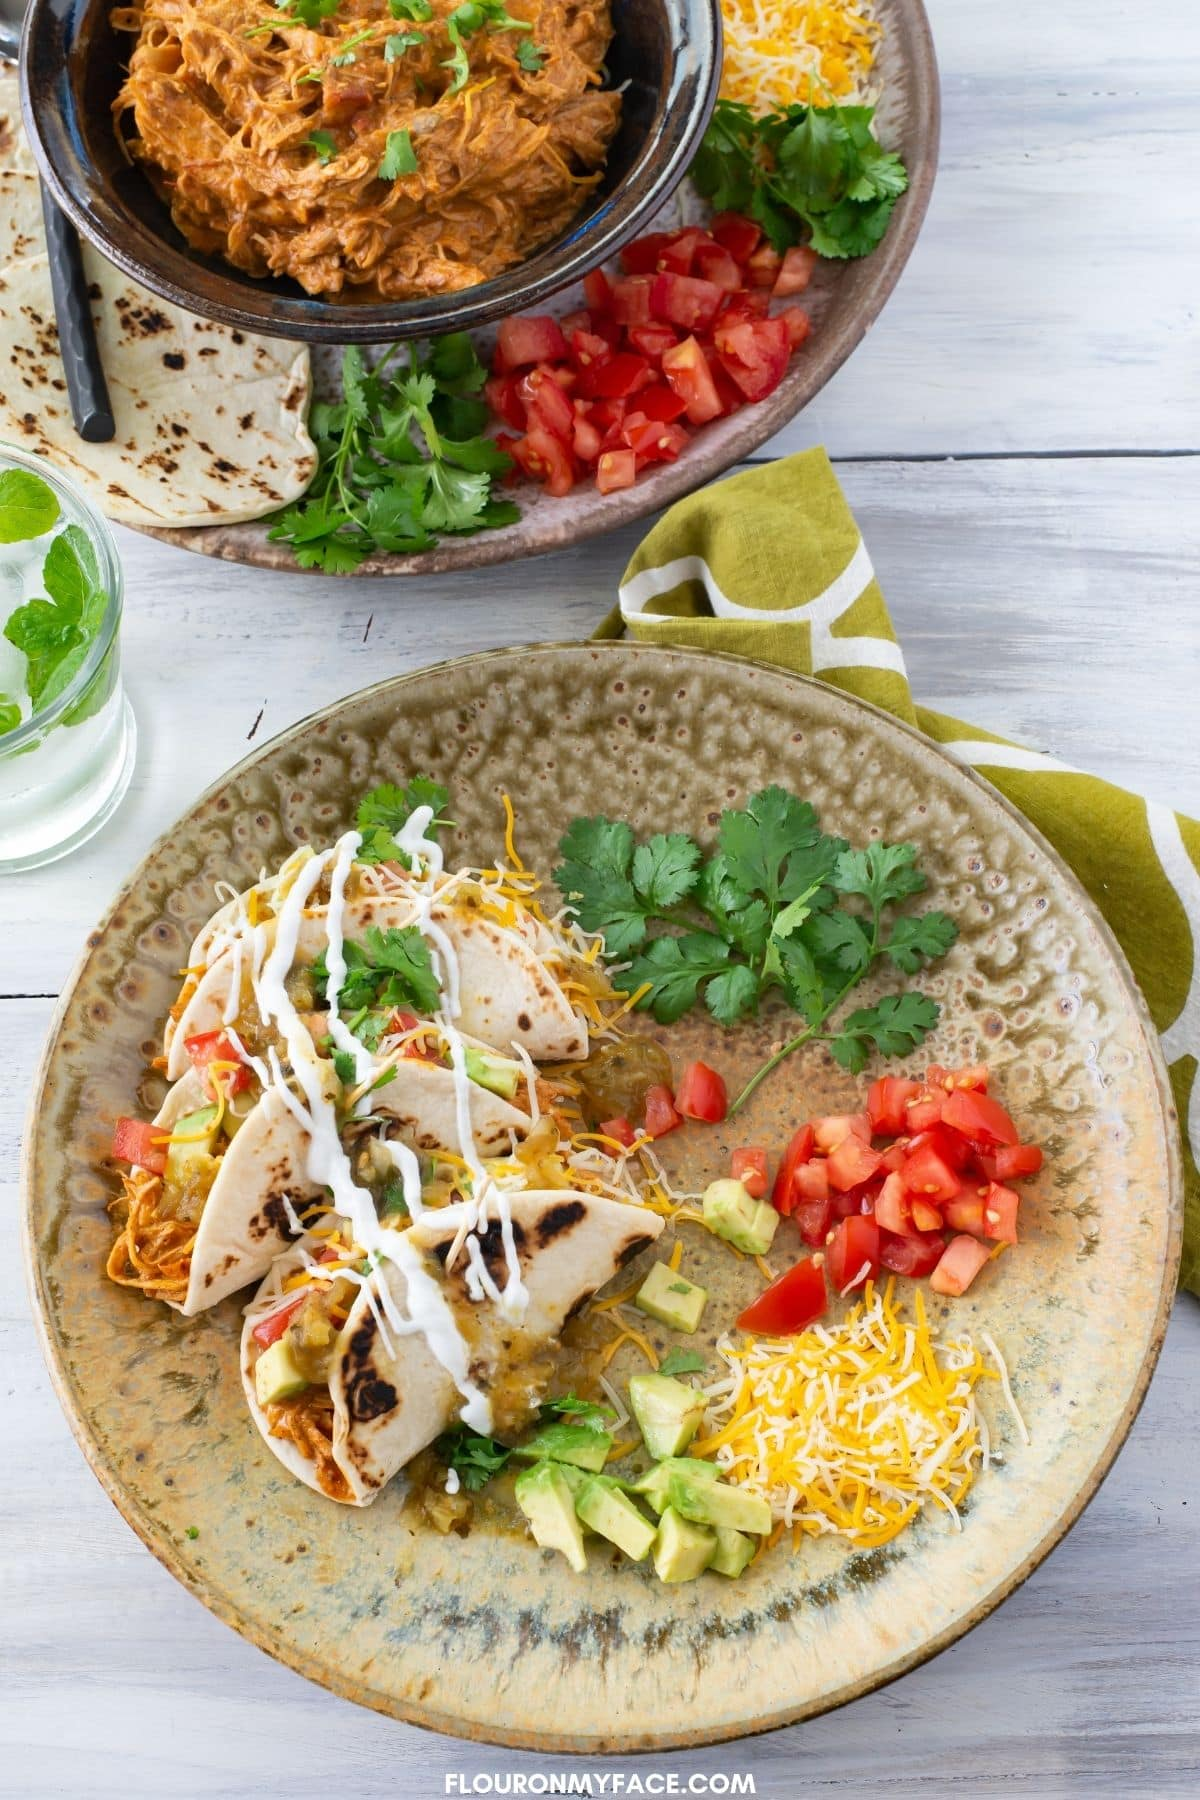 Instant Pot Creamy Chicken Tacos recipe made with taco seasoning and creamy cheese.